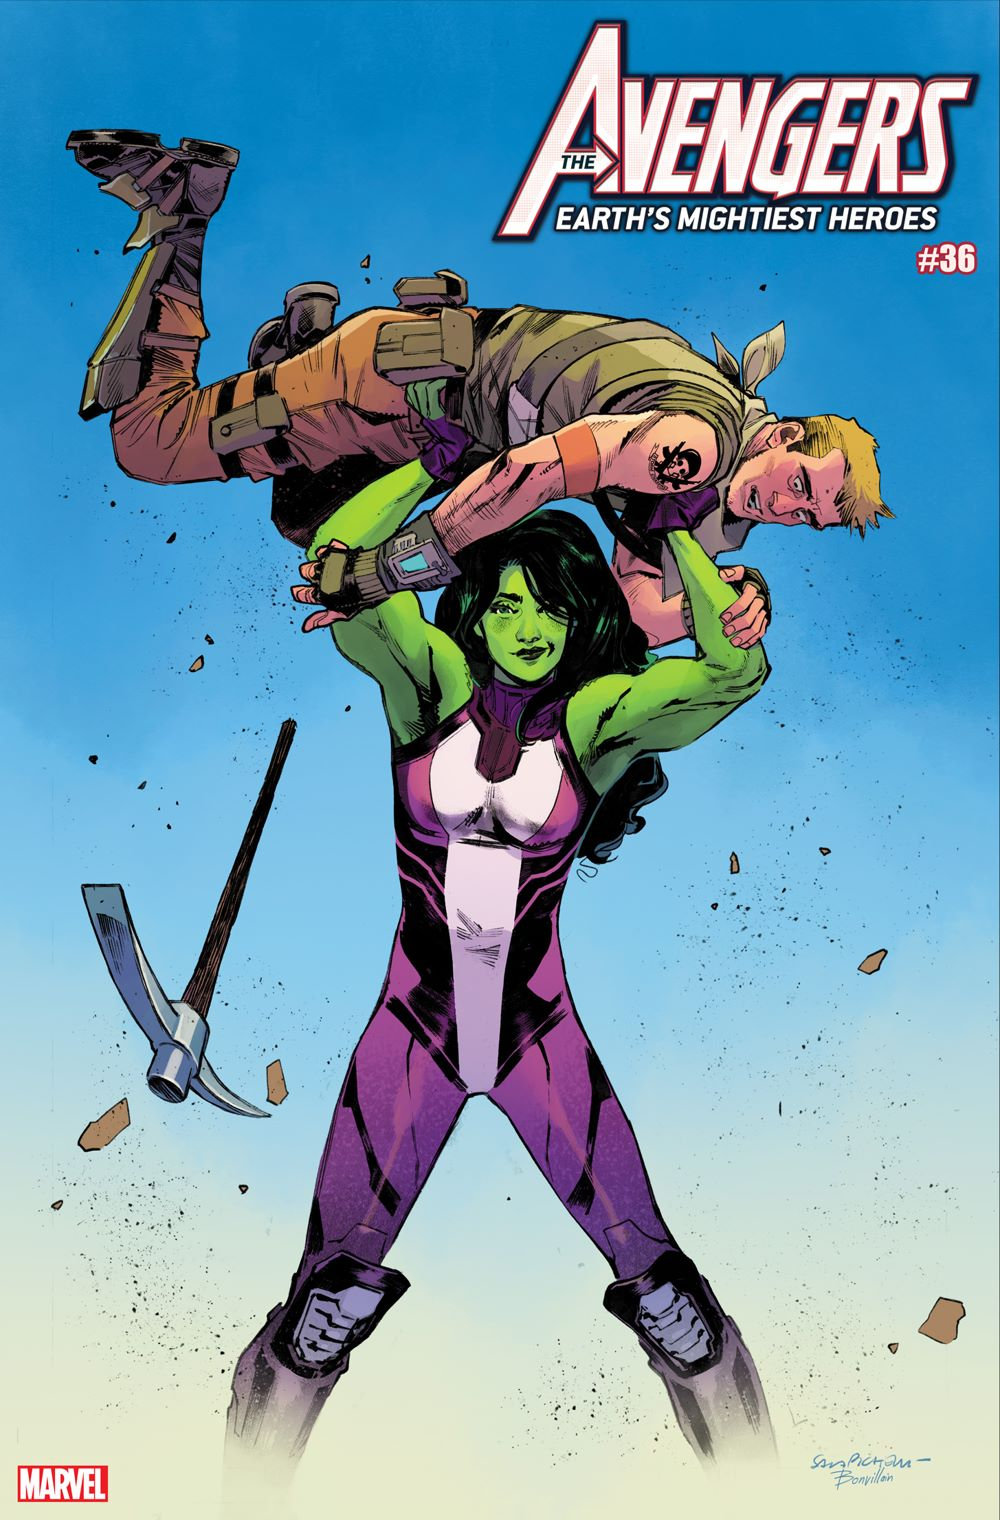 AVEN2018036_Pichelli_FortniteVariant Marvel and Fortnite characters unite on special variant covers